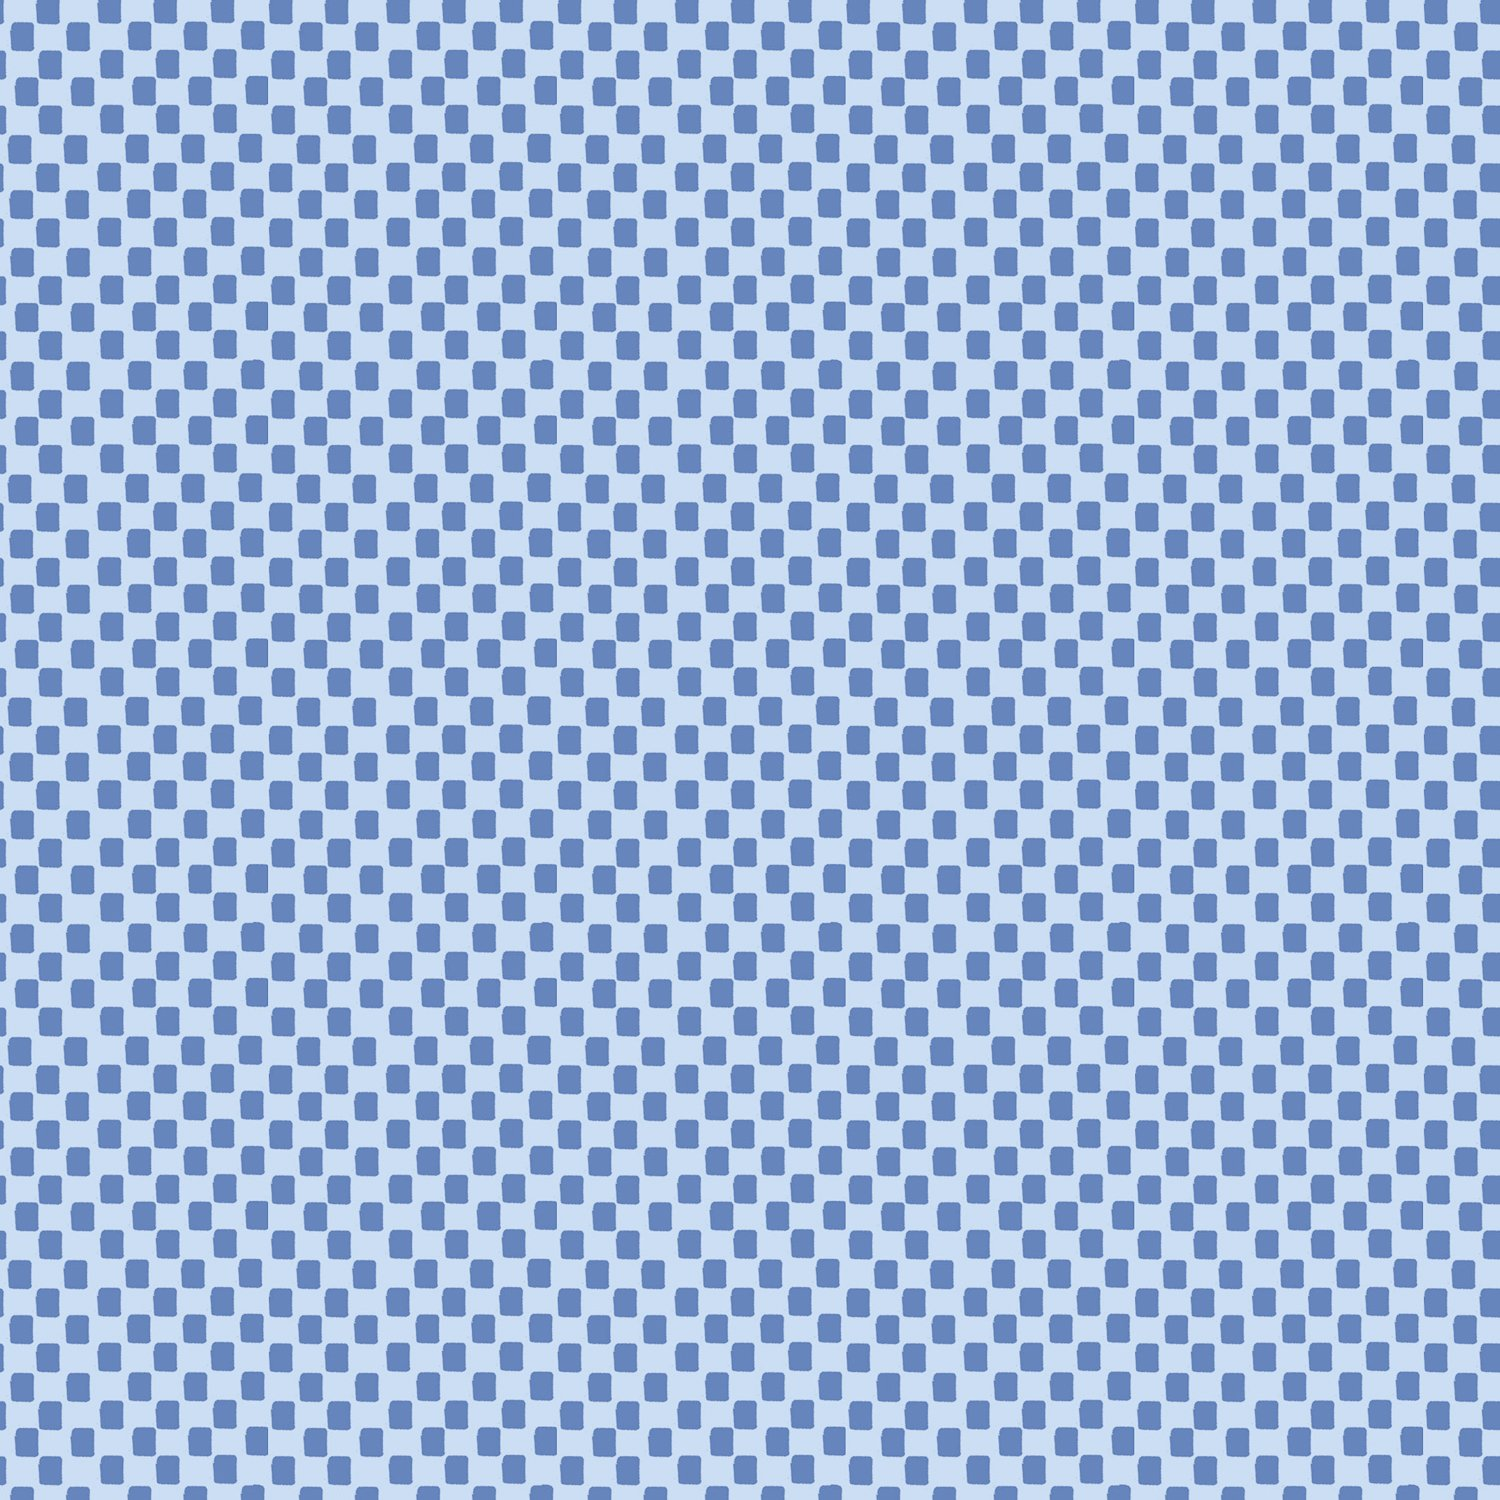 Checkers - Blue Wildwood - Rifle Paper Co.